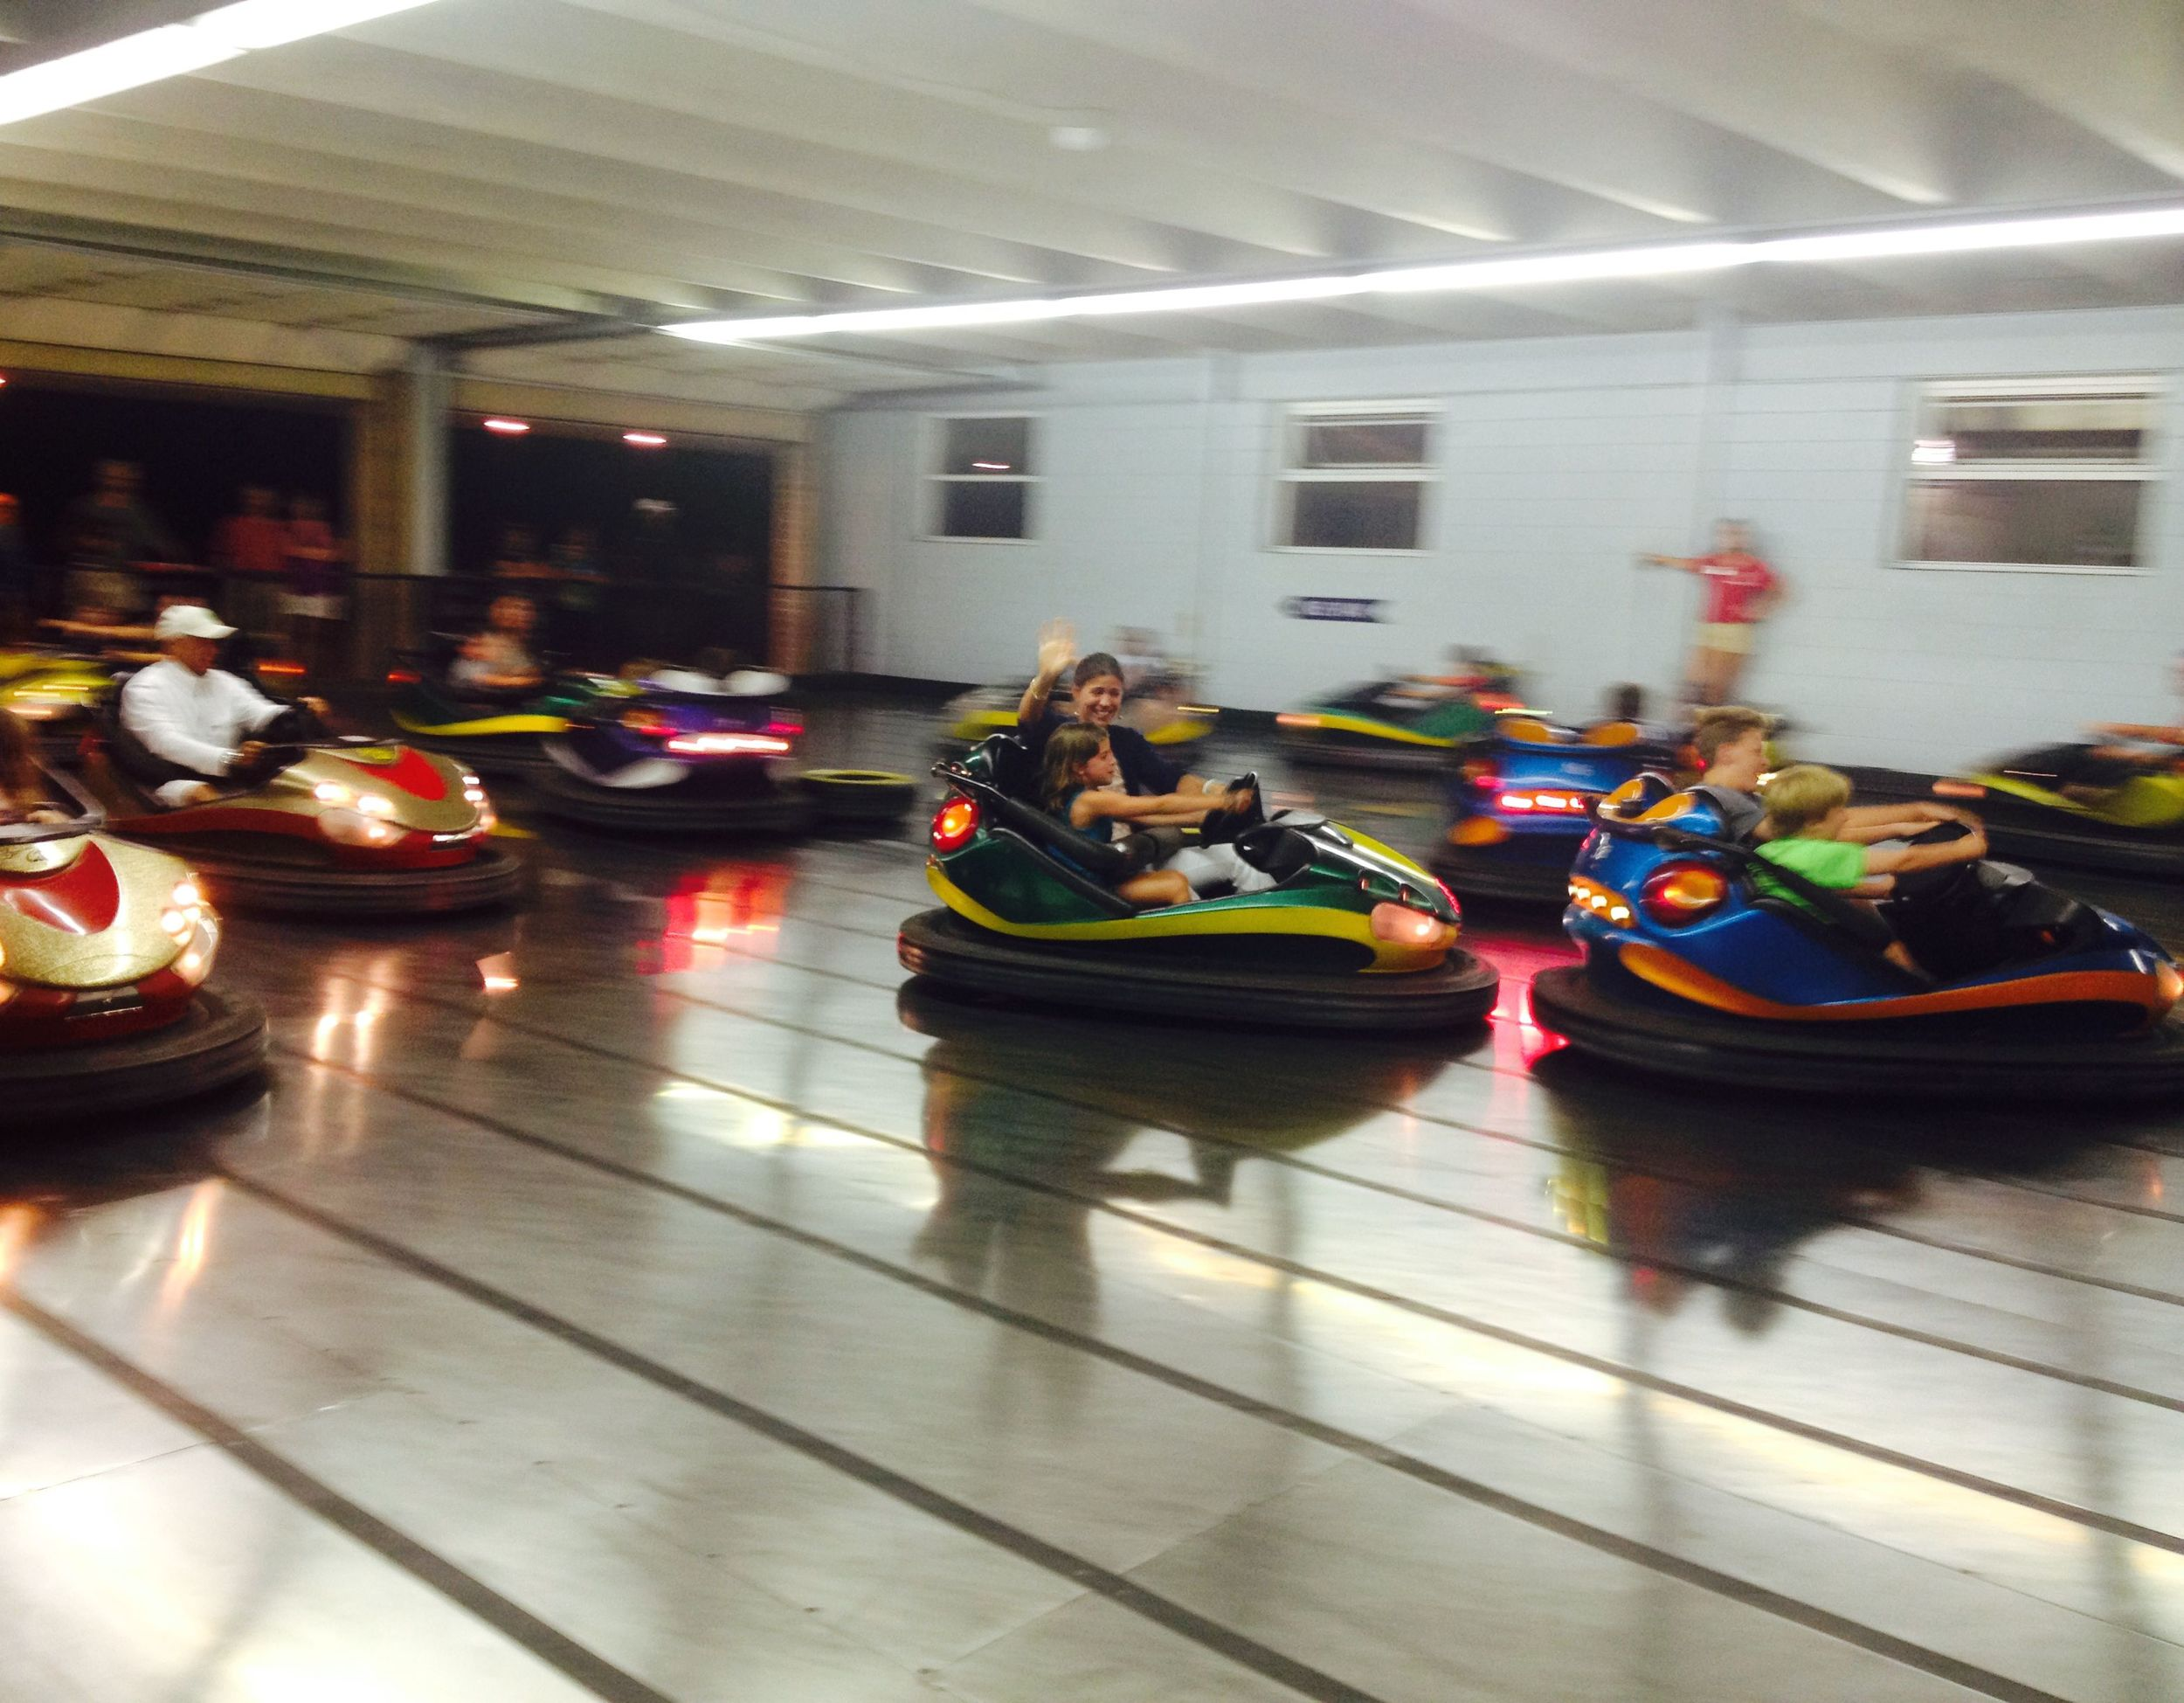 Whitney and Taylor on the bumper cars